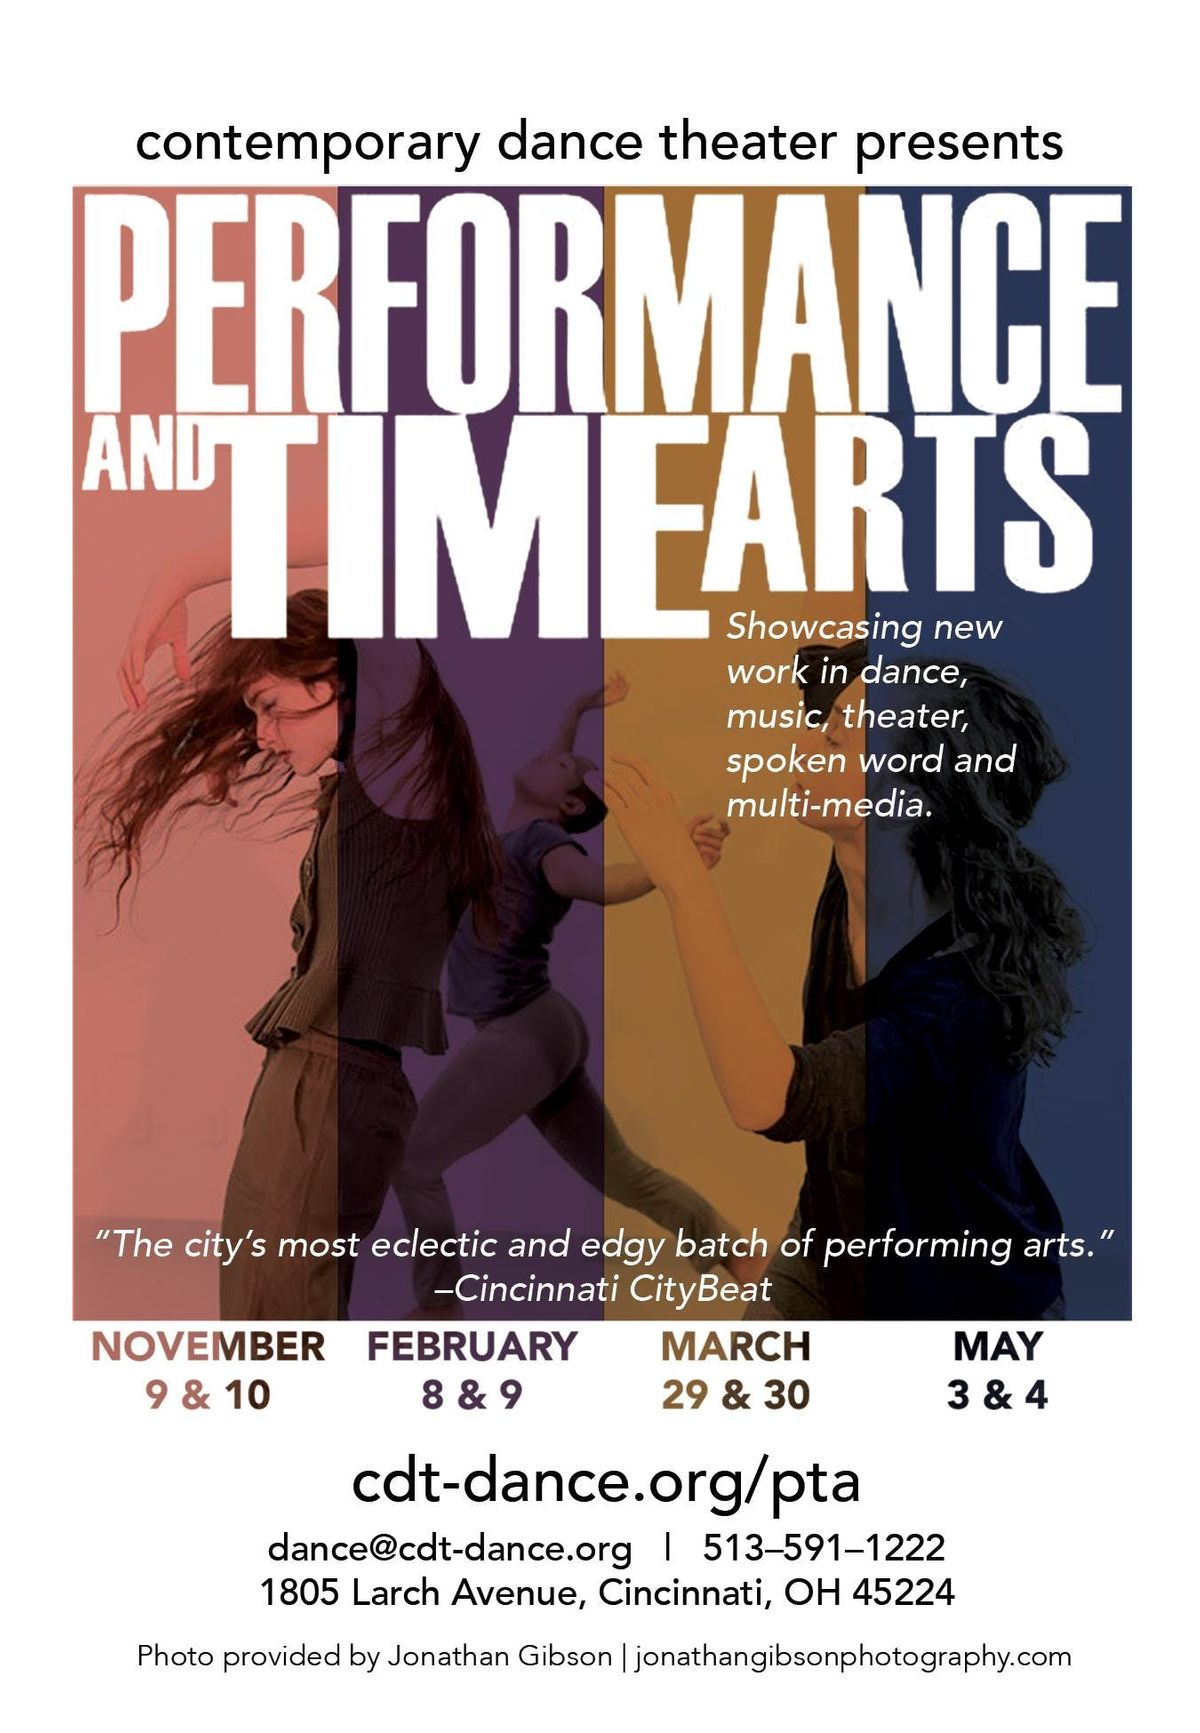 Performance & Time Arts - March 29 & 30 Shows